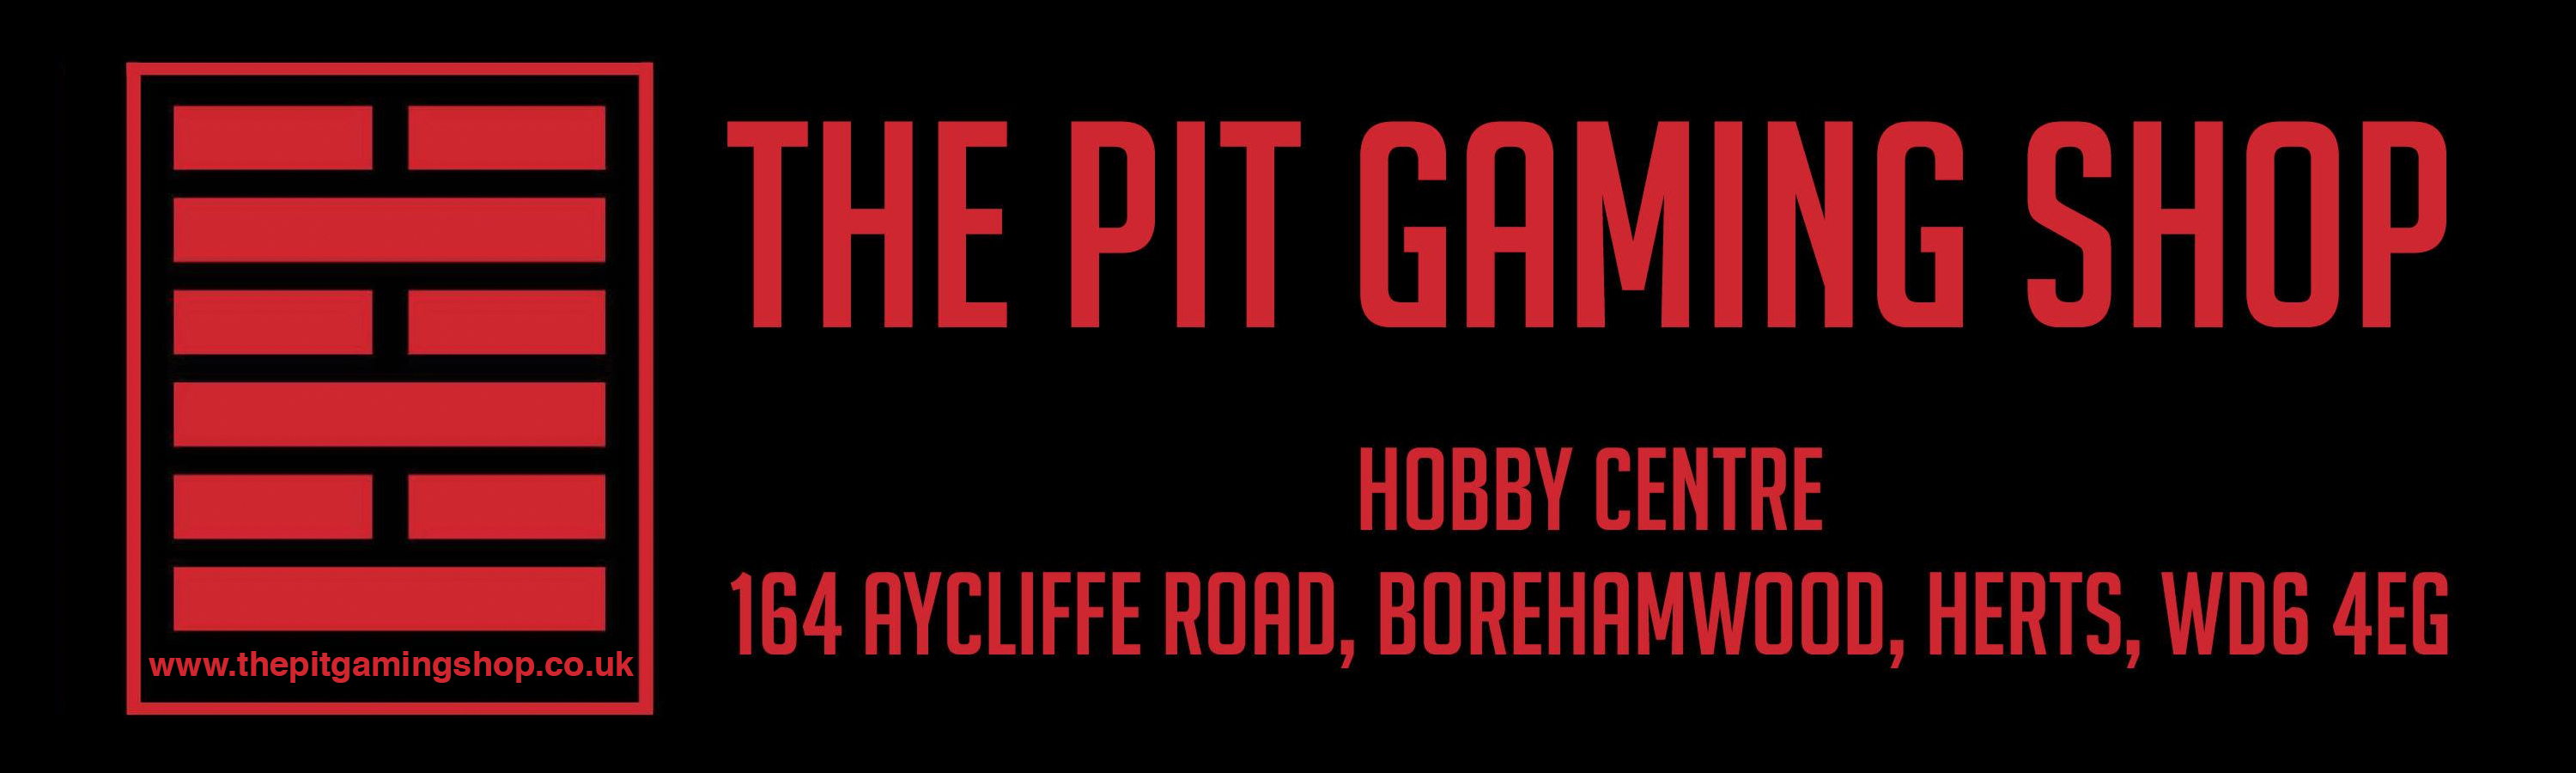 The Pit Gaming Shop